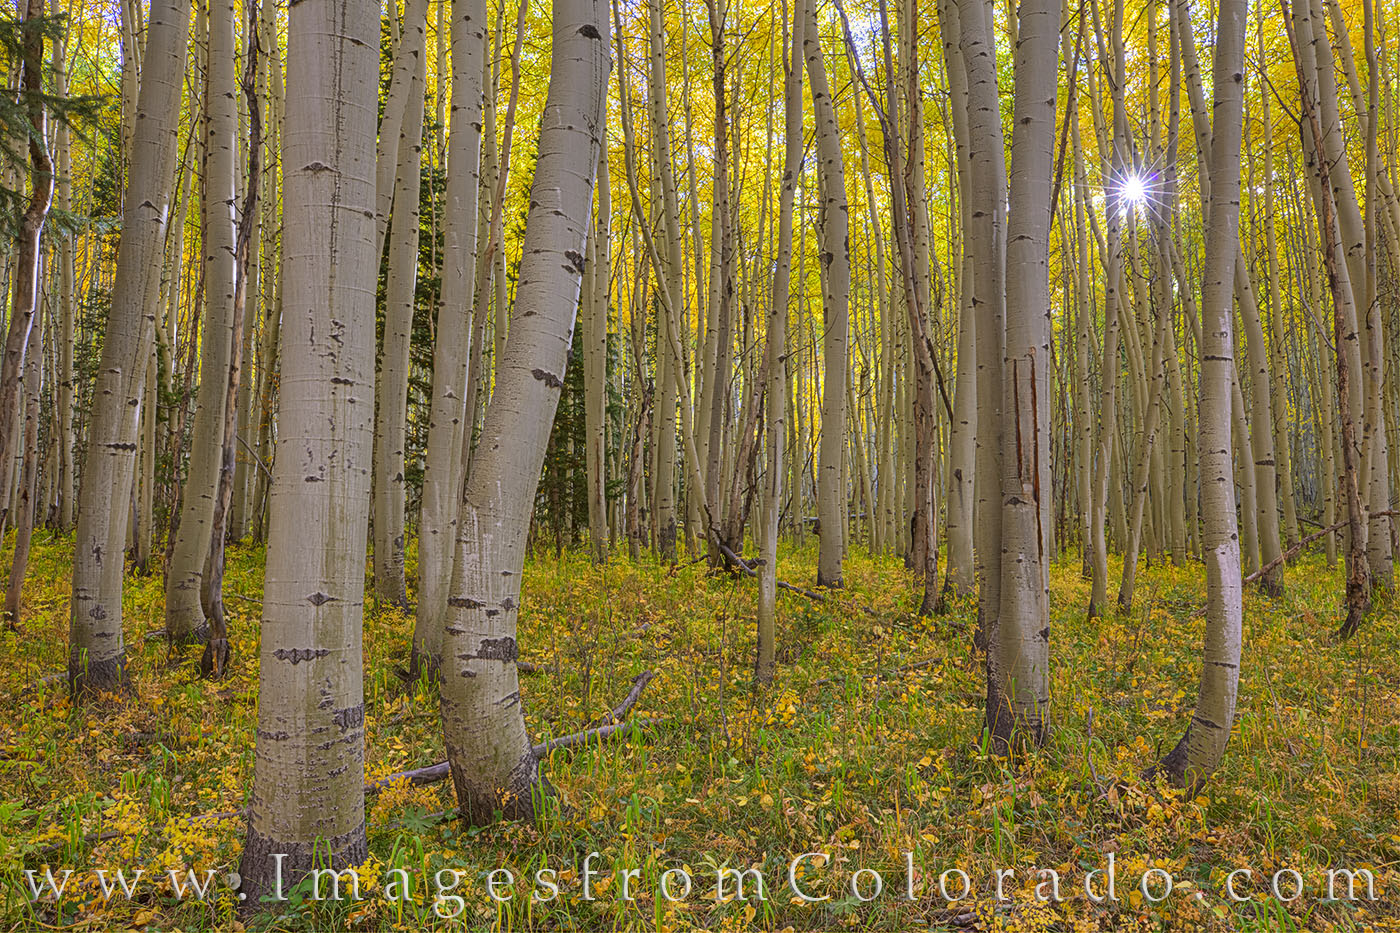 aspen, sunlight, fall, autumn, gold, yellow, winter park, grand county, fraser, cimarron, photo